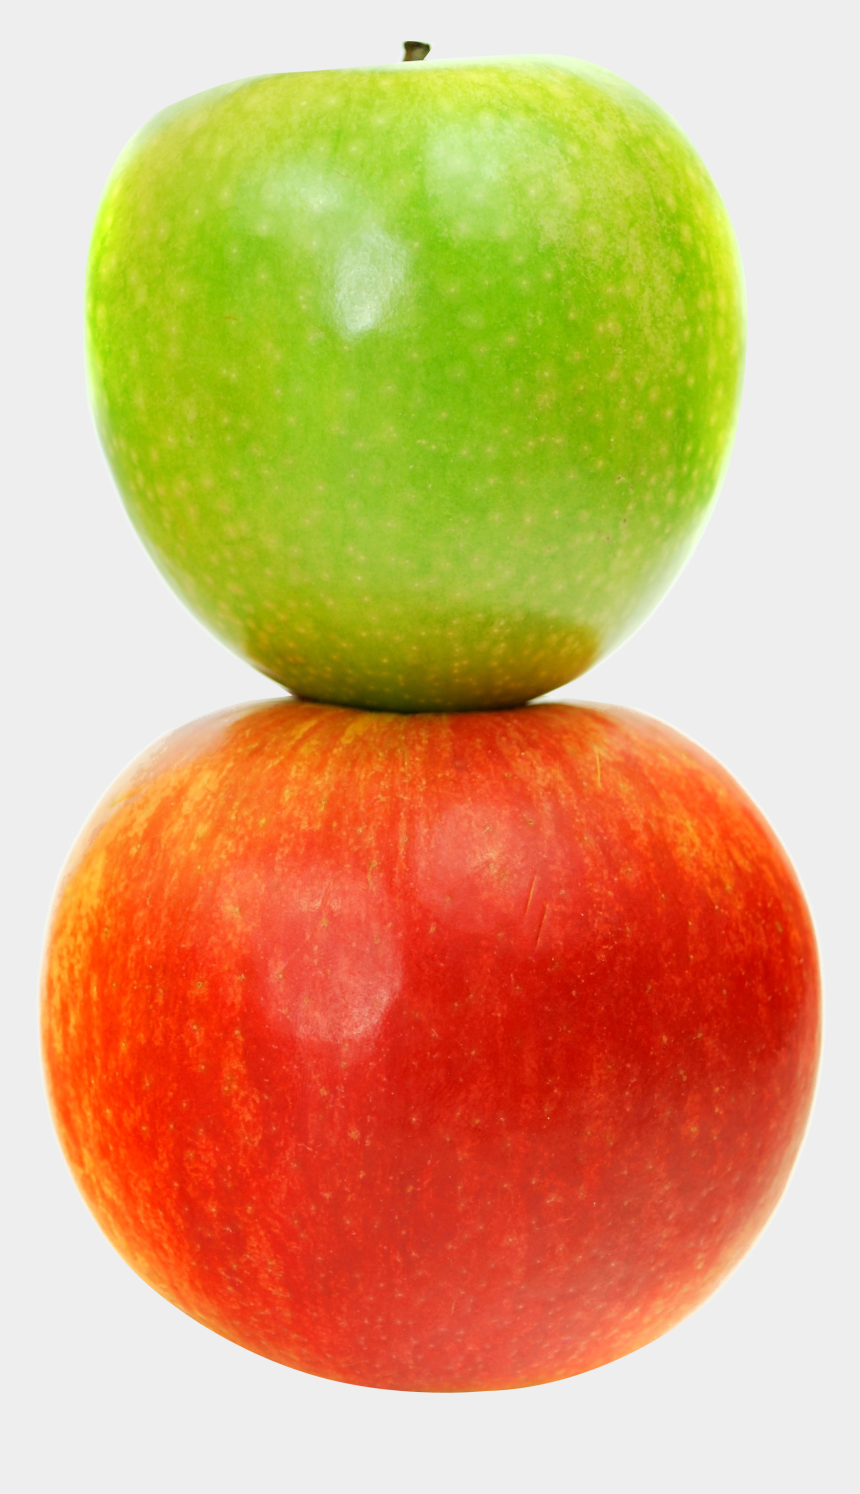 apples in a basket clipart, Cartoons - Double Apples - Double Apple Png